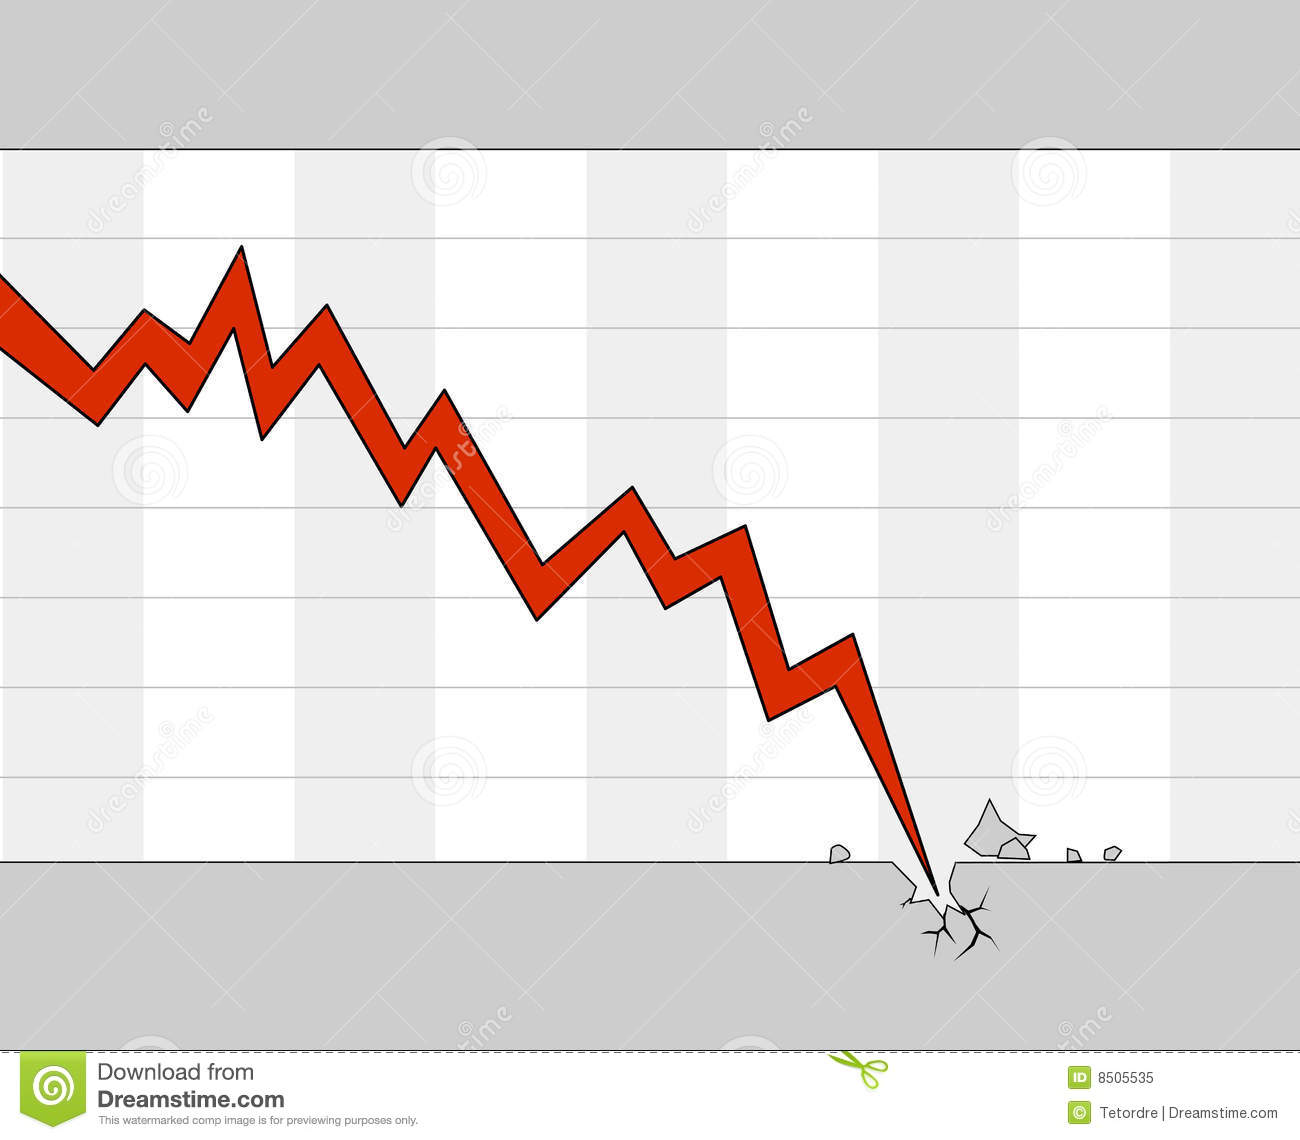 Falling stock chart stock illustration. Image of global ...